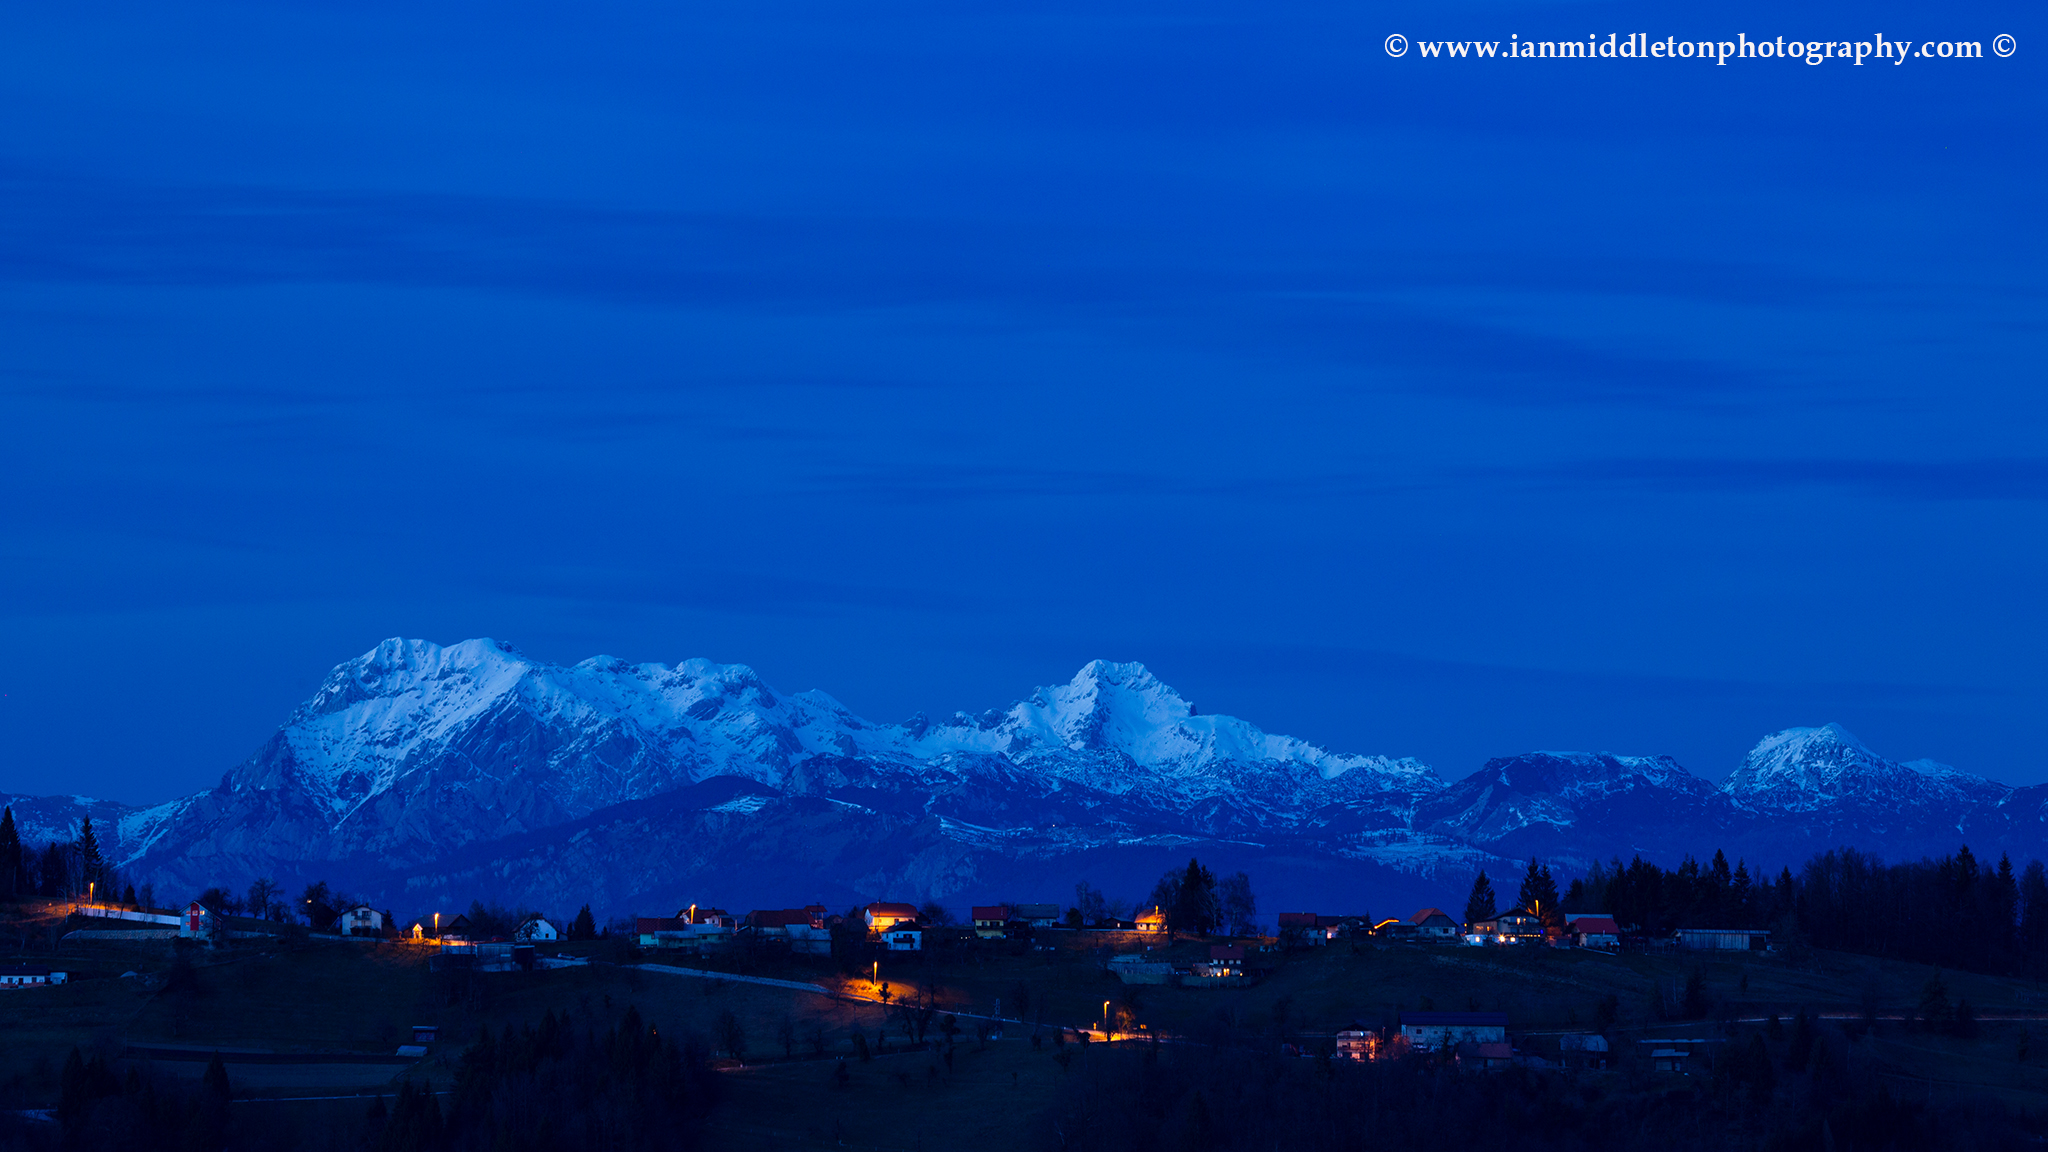 View across to the Kamnik Alps at dusk, seen from a hill in prezganje in the Jance hills to the east of Ljubljana, Slovenia